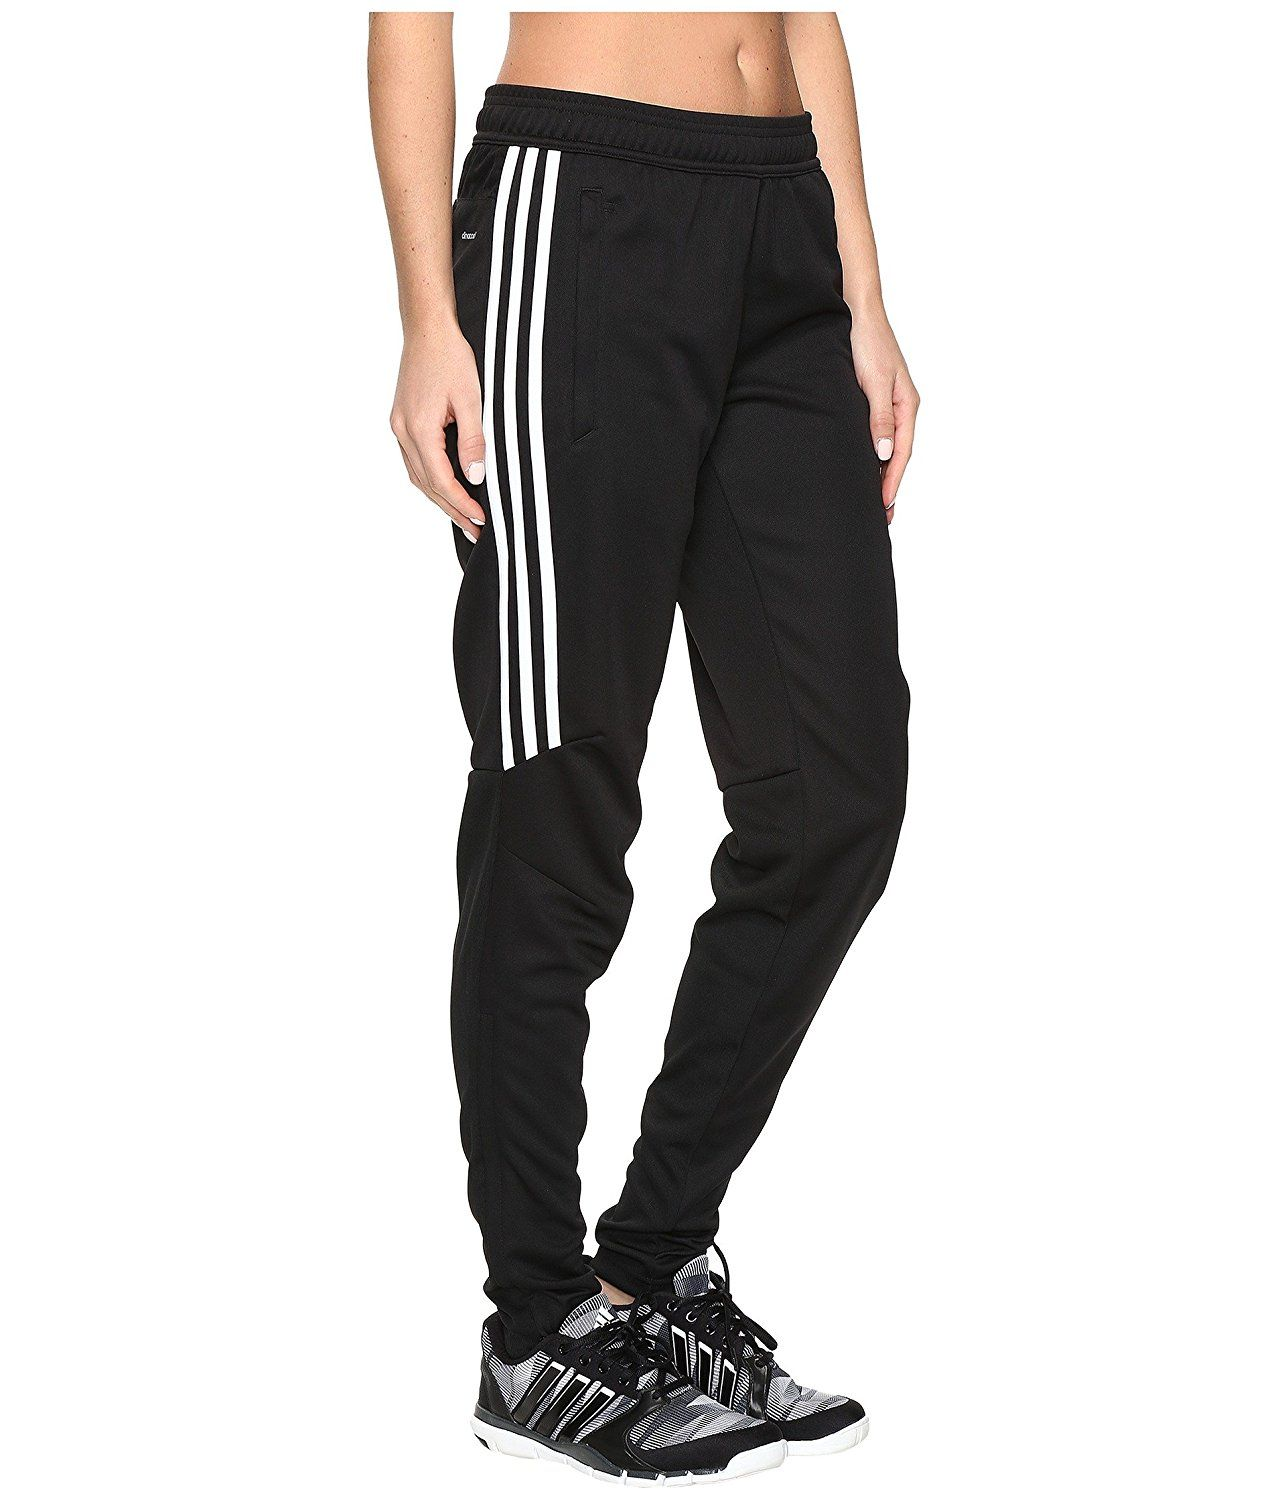 dde28de76c Amazon.com  adidas Women s Soccer Tiro 17 Training Pants